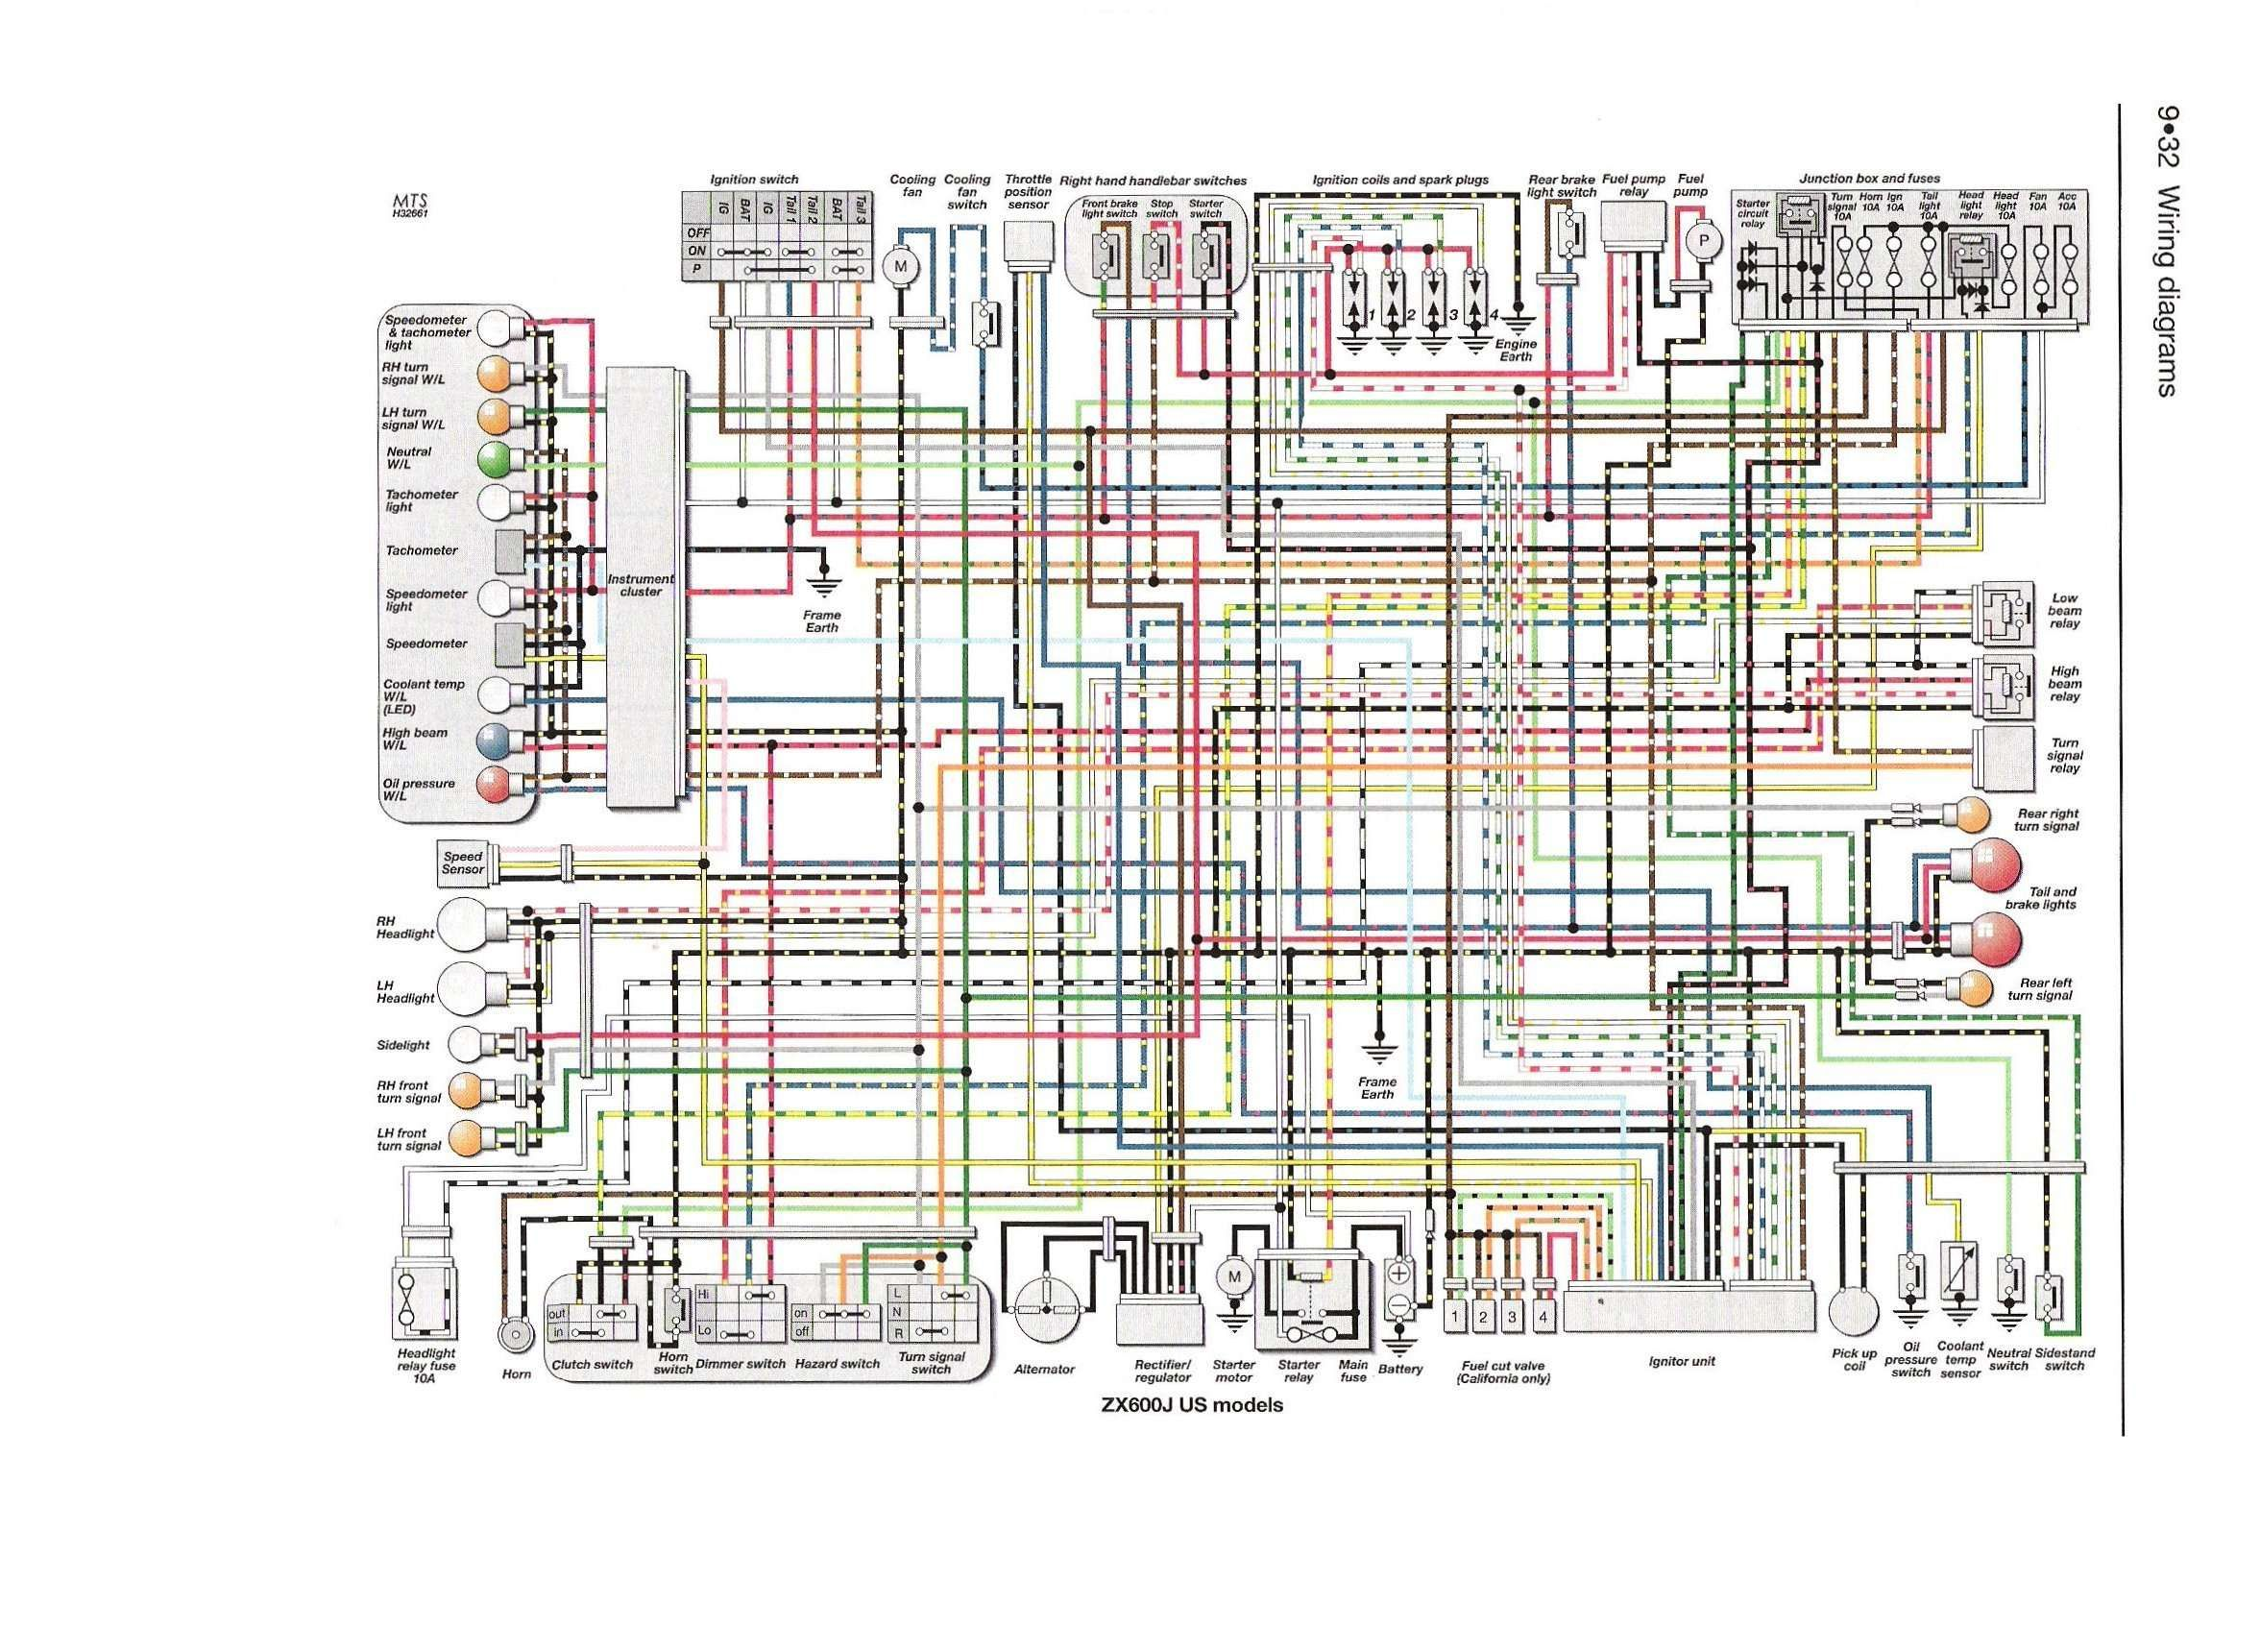 zx6r engine diagram wiring diagram database 2004 ninja 636 engine diagram [ 2353 x 1720 Pixel ]